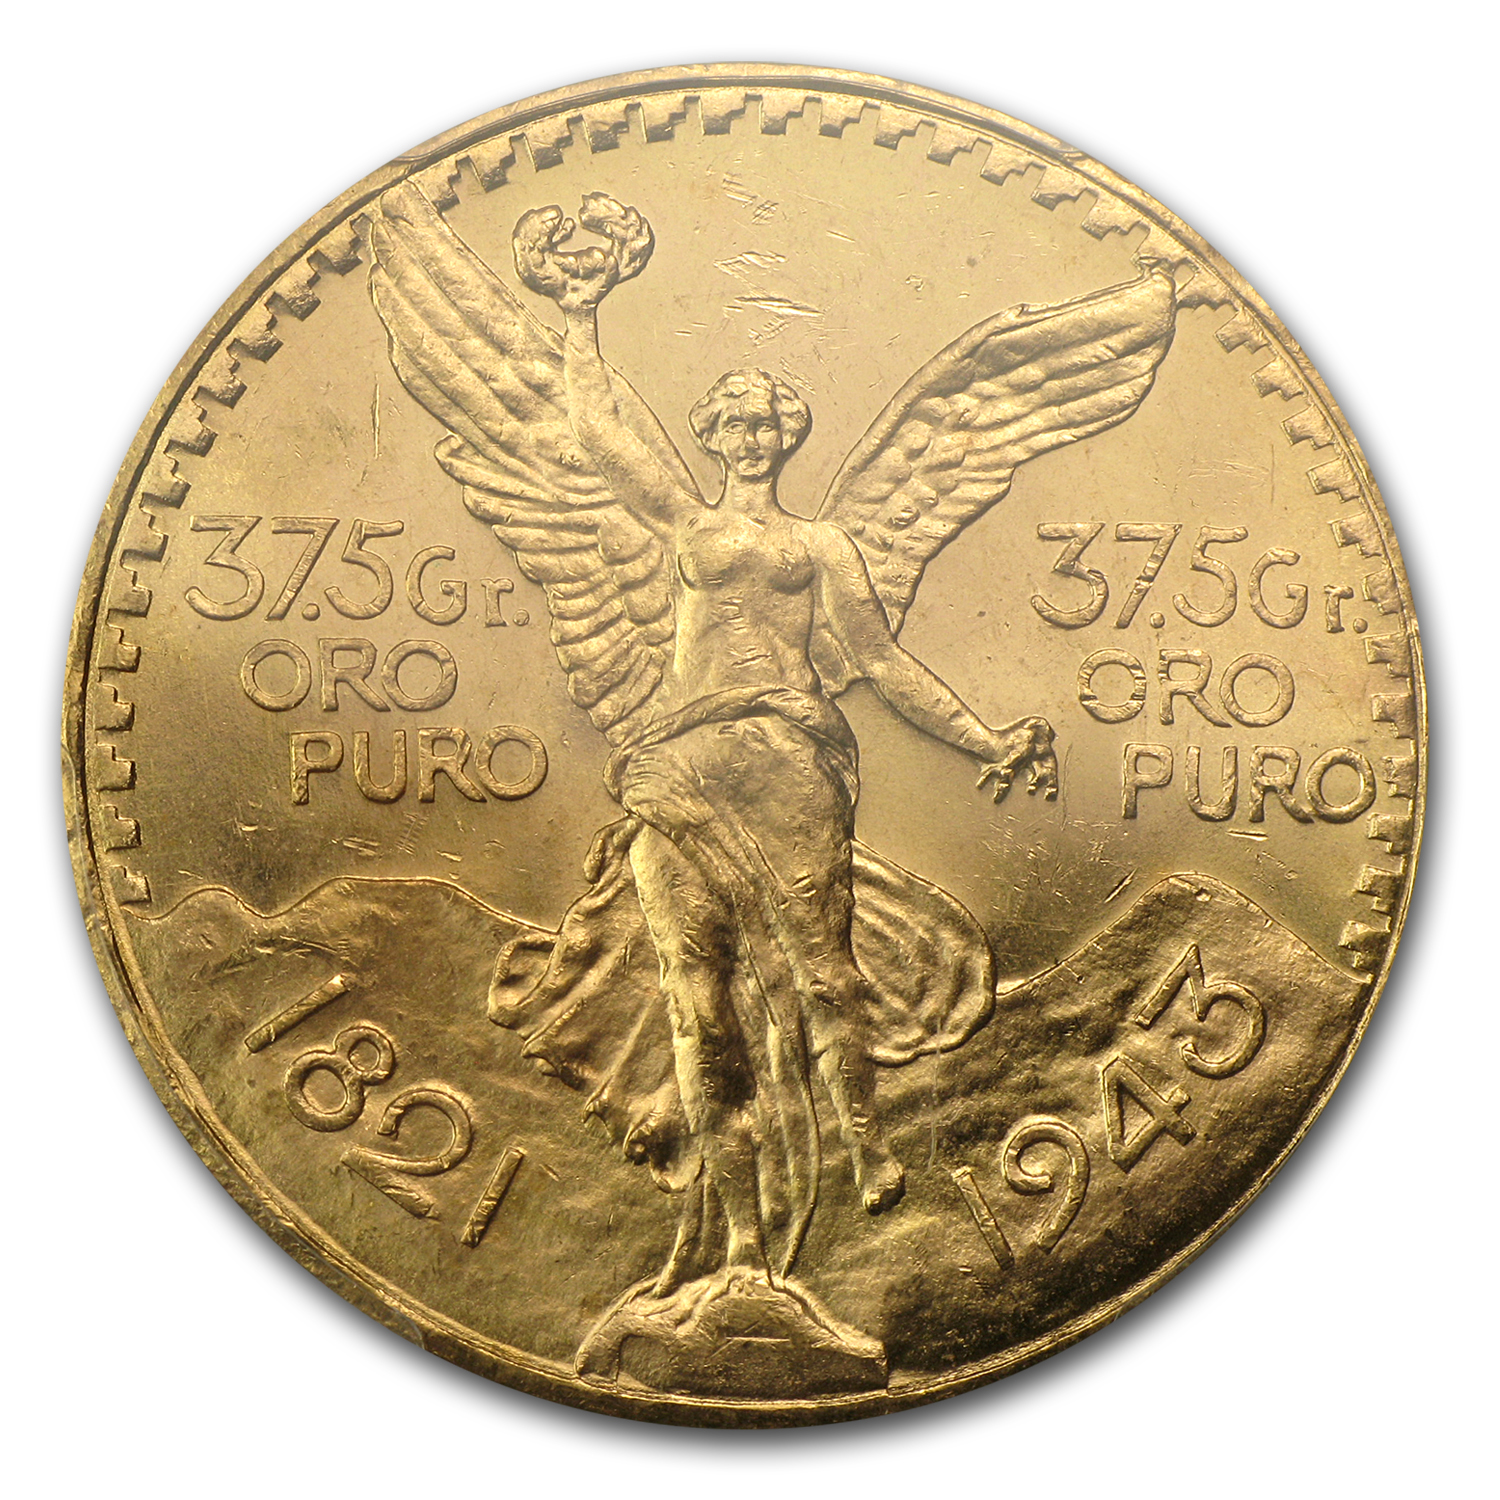 Mexico 1943 50 Pesos Gold Coin - MS-64 PCGS